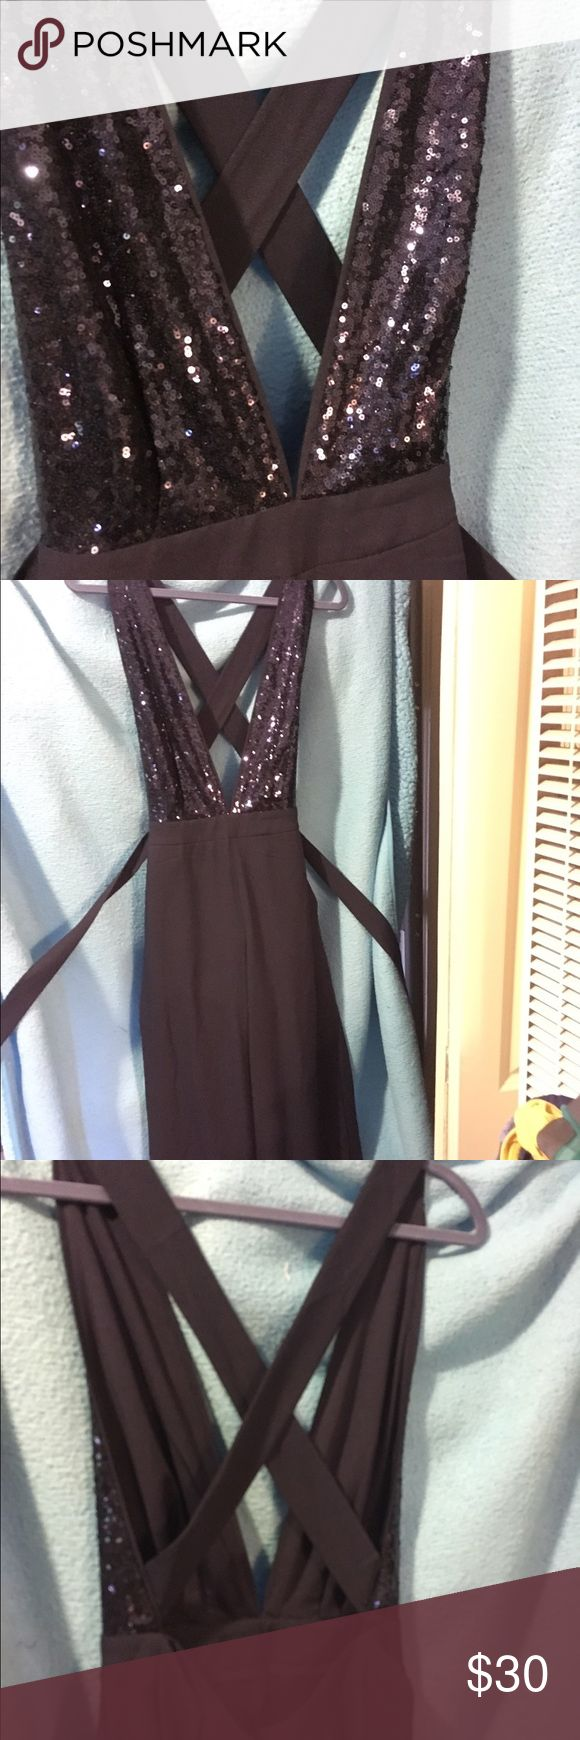 Dark blue plunge sequins jumpsuit LULU's dark blue plunge sequins jumpsuit. Size M, never worn. No tags. In perfect condition. Lulu's Pants Jumpsuits & Rompers